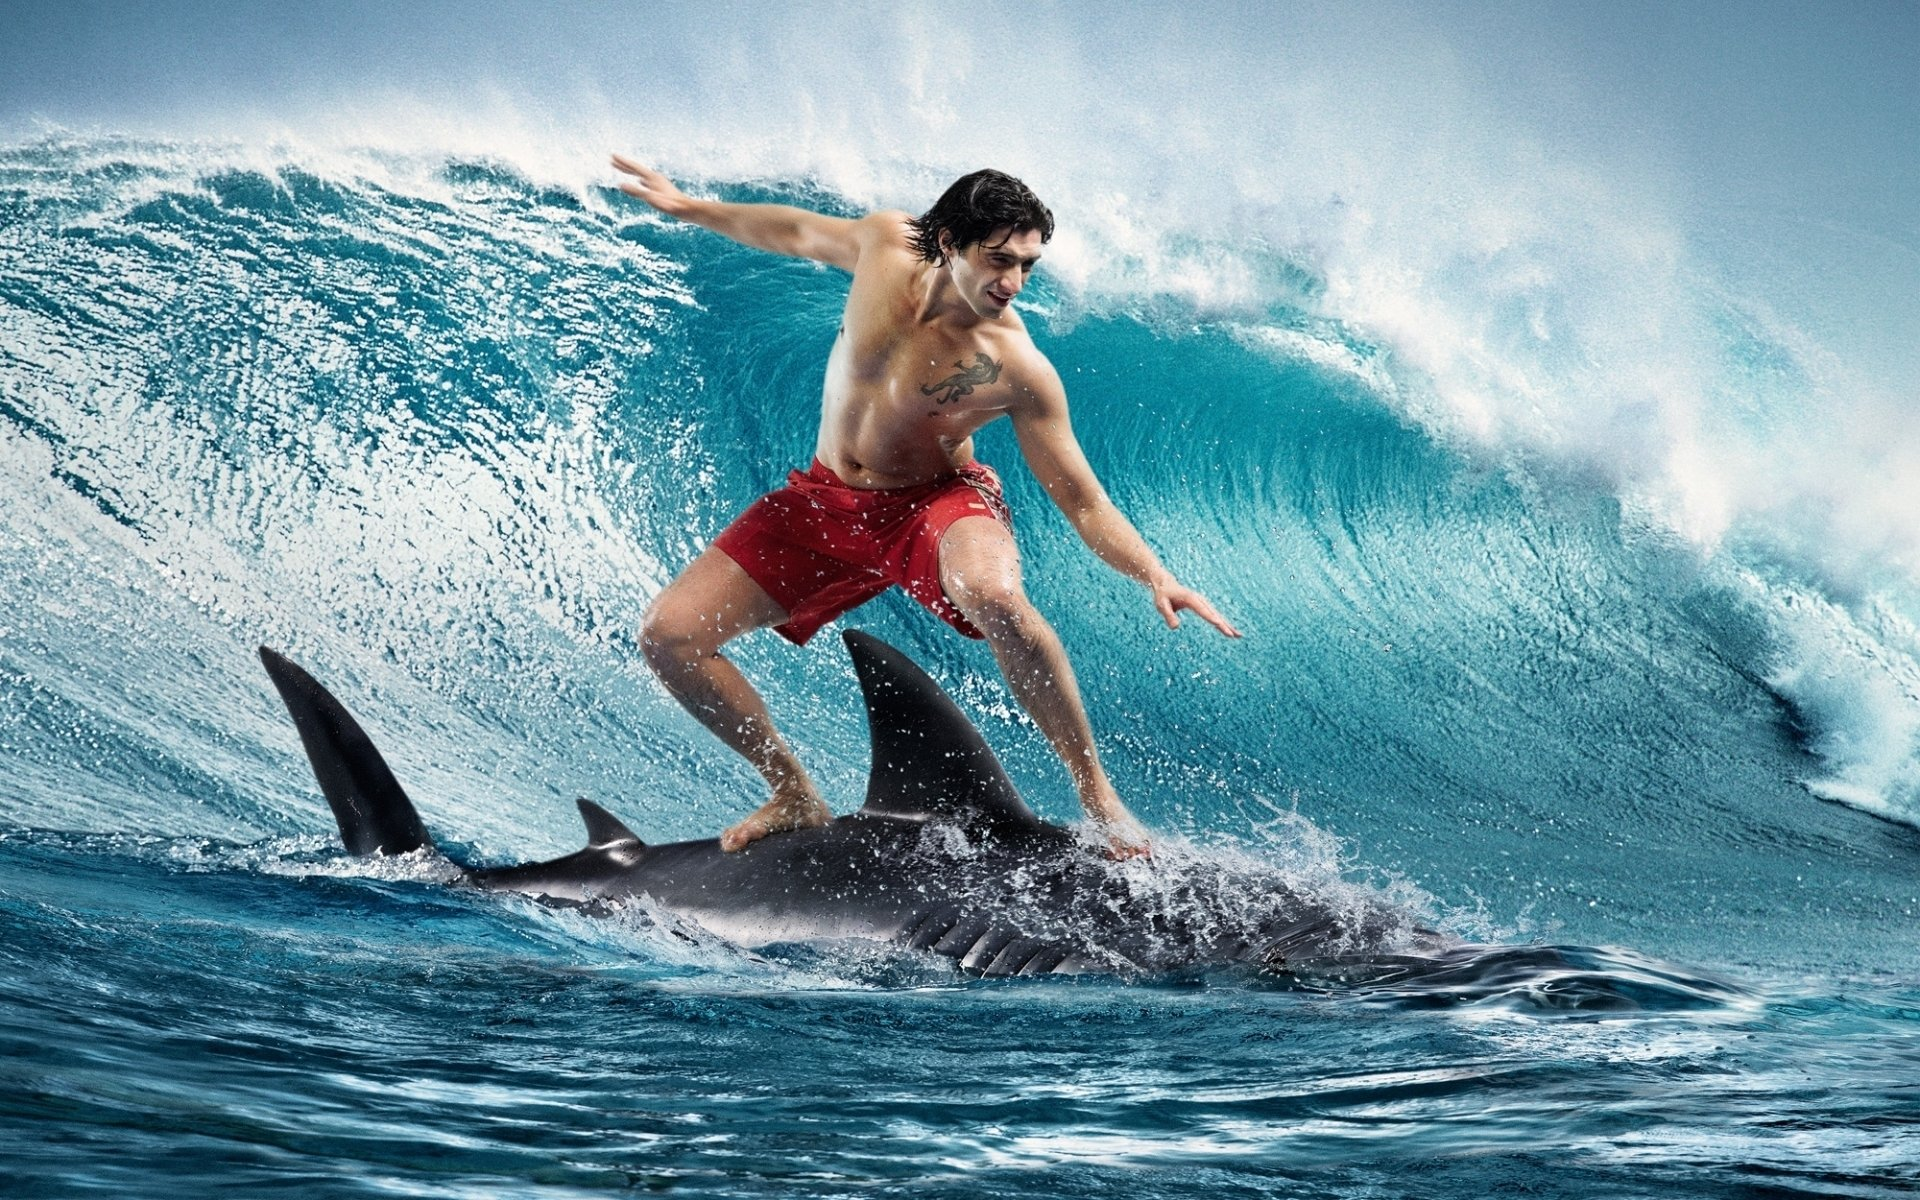 203 Surfing Hd Wallpapers Background Images Wallpaper